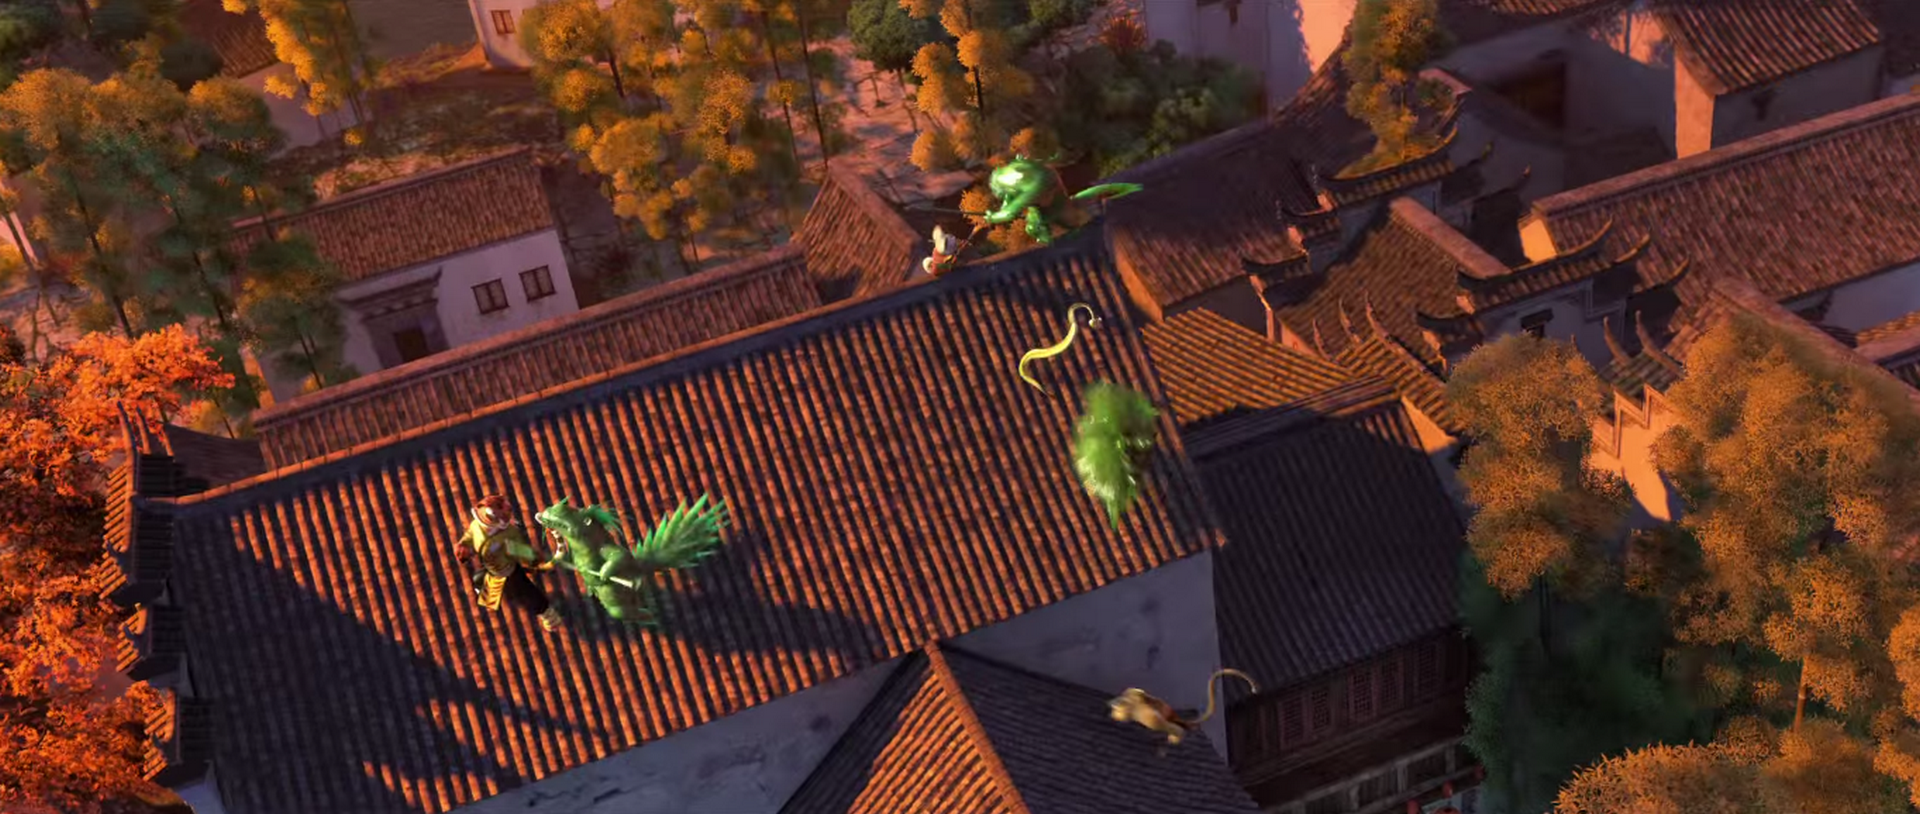 Battle between kung fu masters and jade zombies